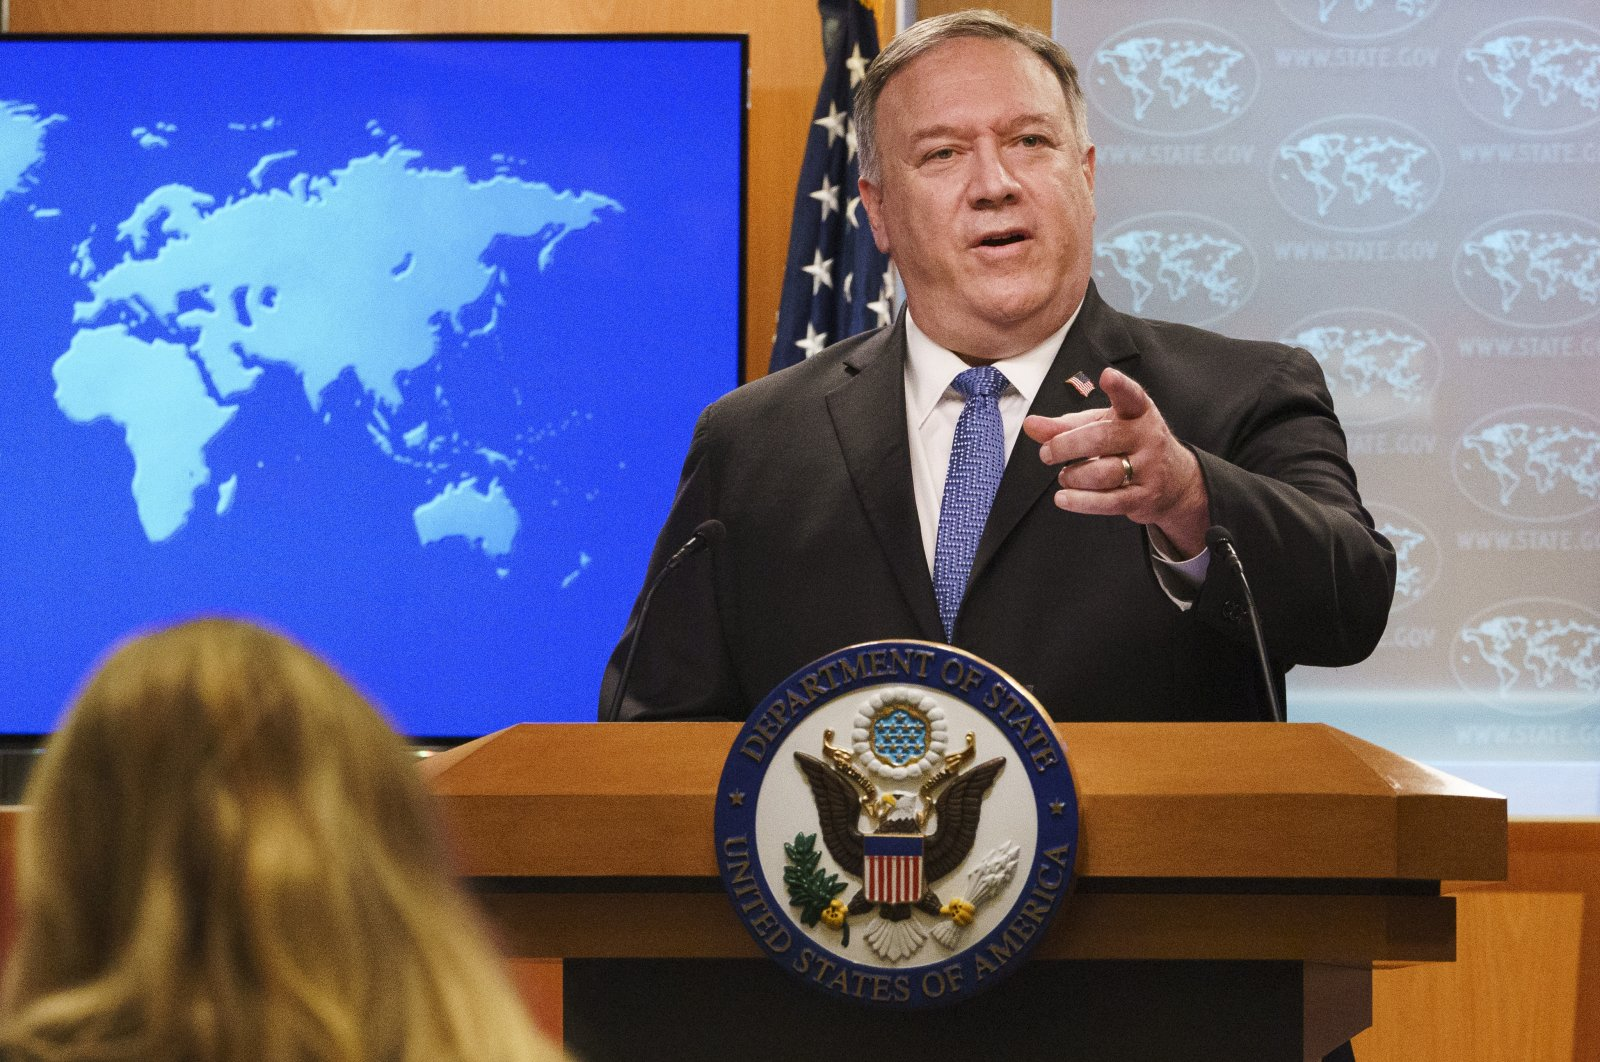 U.S. Secretary of State Mike Pompeo gestures toward a reporter while speaking at the State Department in Washington, Nov. 10, 2020. (AP Photo)